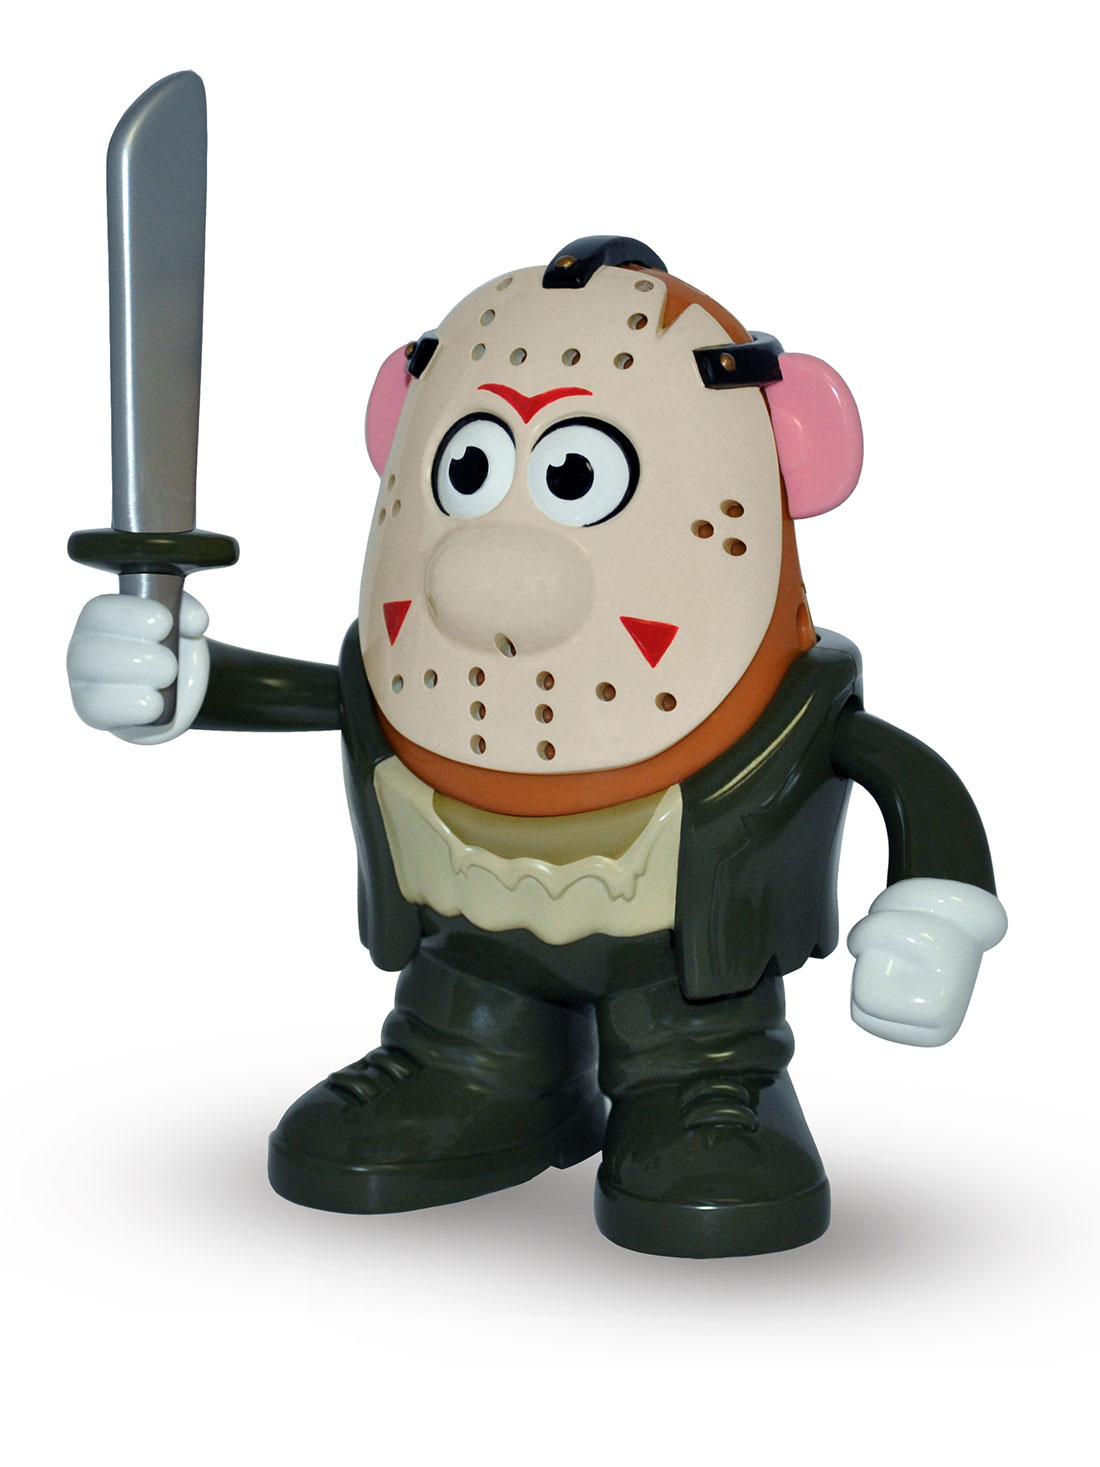 Friday the 13th Potato Head